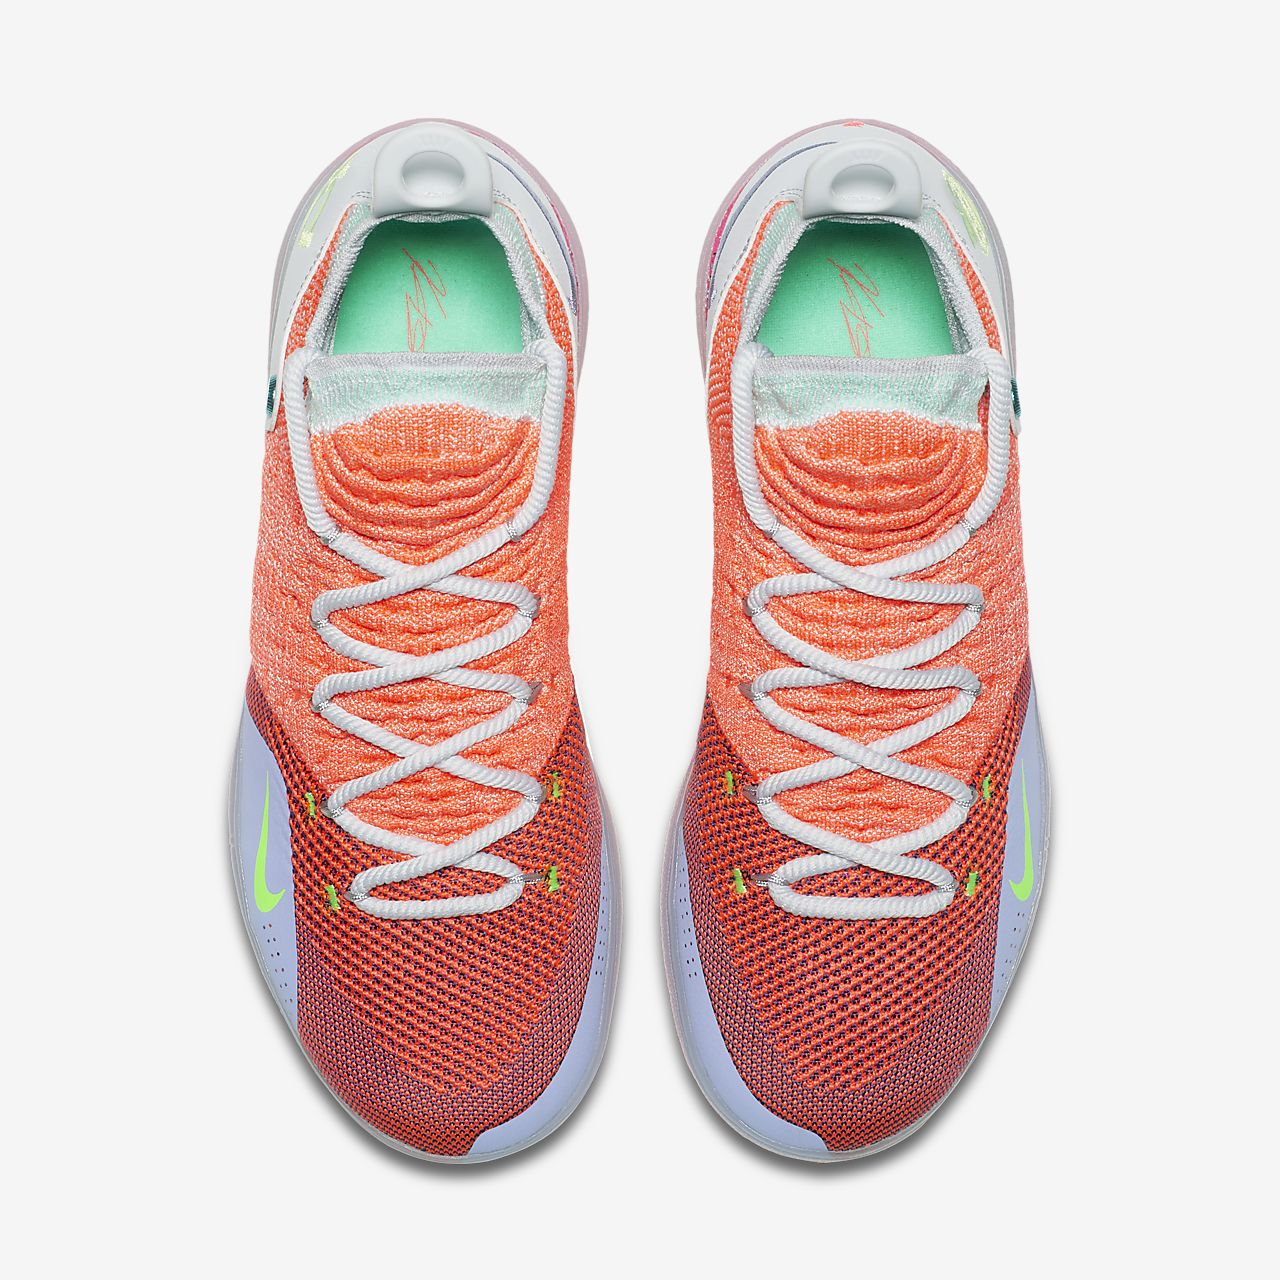 "the latest 97cca fc545 Nike Zoom KD11 EP Basketball Shoe  Nike Zoom KD 11 EYBL  2018 Nike KD 11 "" EYBL"" Hot Punch Lime Blast-Pure Platinum For Sale ..."